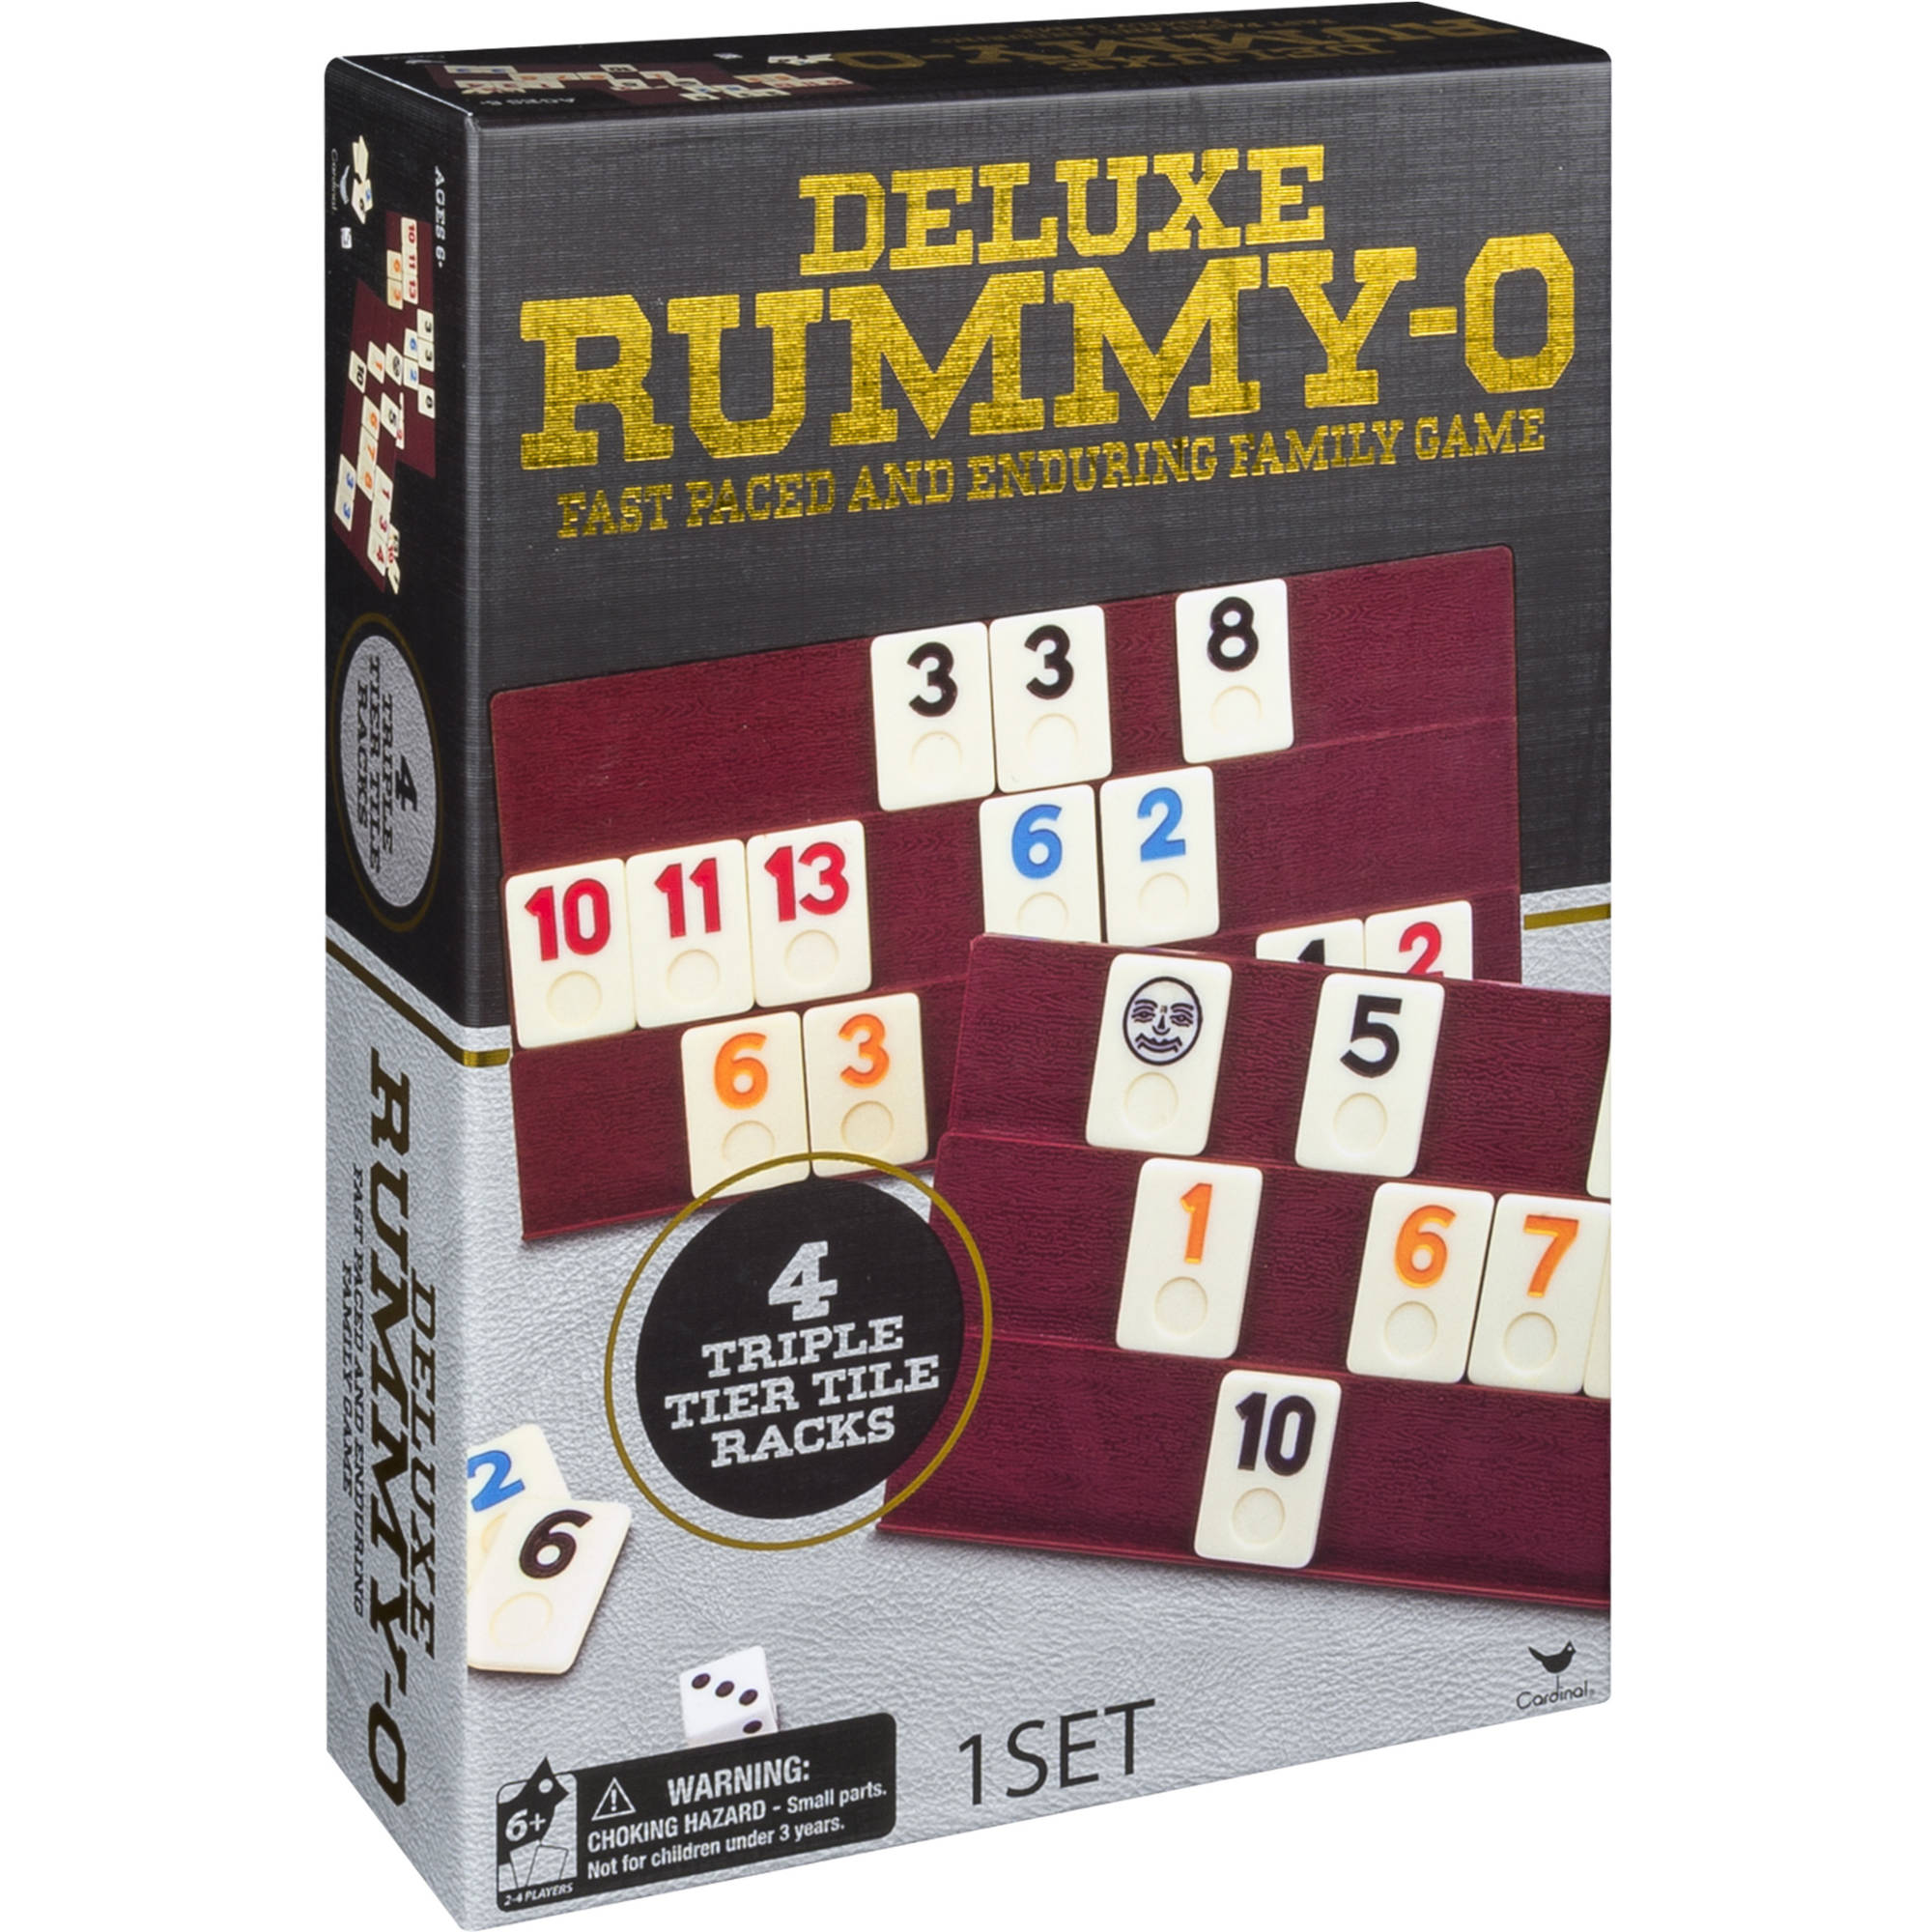 Deluxe Rummy-O, Fast Paced and Enduring Family Game